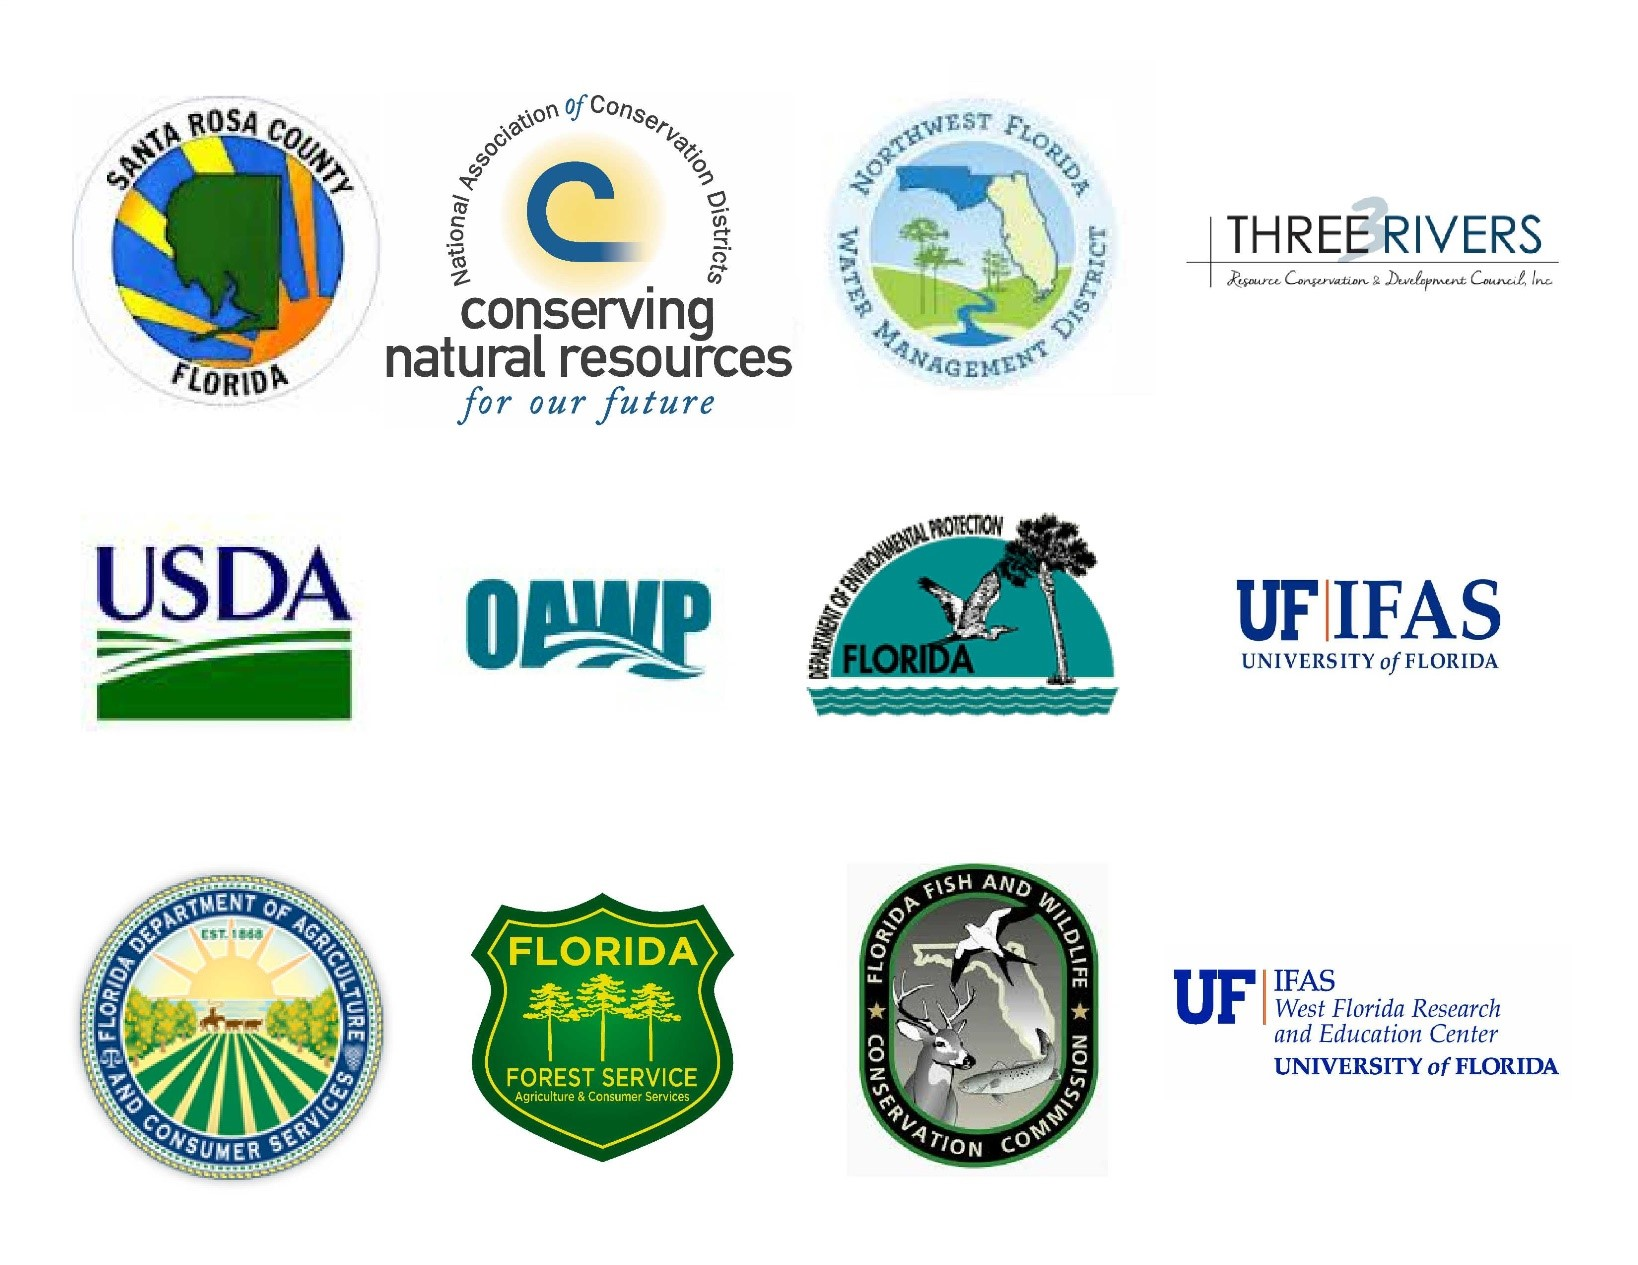 Image of Partner logos Left to Right, Santa Rosa County, National Association of Conservation Districts, Northwest Florida Water Management District, Three Rivers Resource Conservation and Development Council Inc., United States Department of Agriculture, Office of Accountability and Whistleblower Protection, Florida Department of Environmental Protection, University of Florida Institute of Food and Agricultural Sciences, Florida Department of Agriculture and Consumer Services, Florida Forest Service, Florida Fish and Wildlife Conservation Commission, University of Florida Institute of Food and Agricultural Sciences West Florida Research and Education Center.